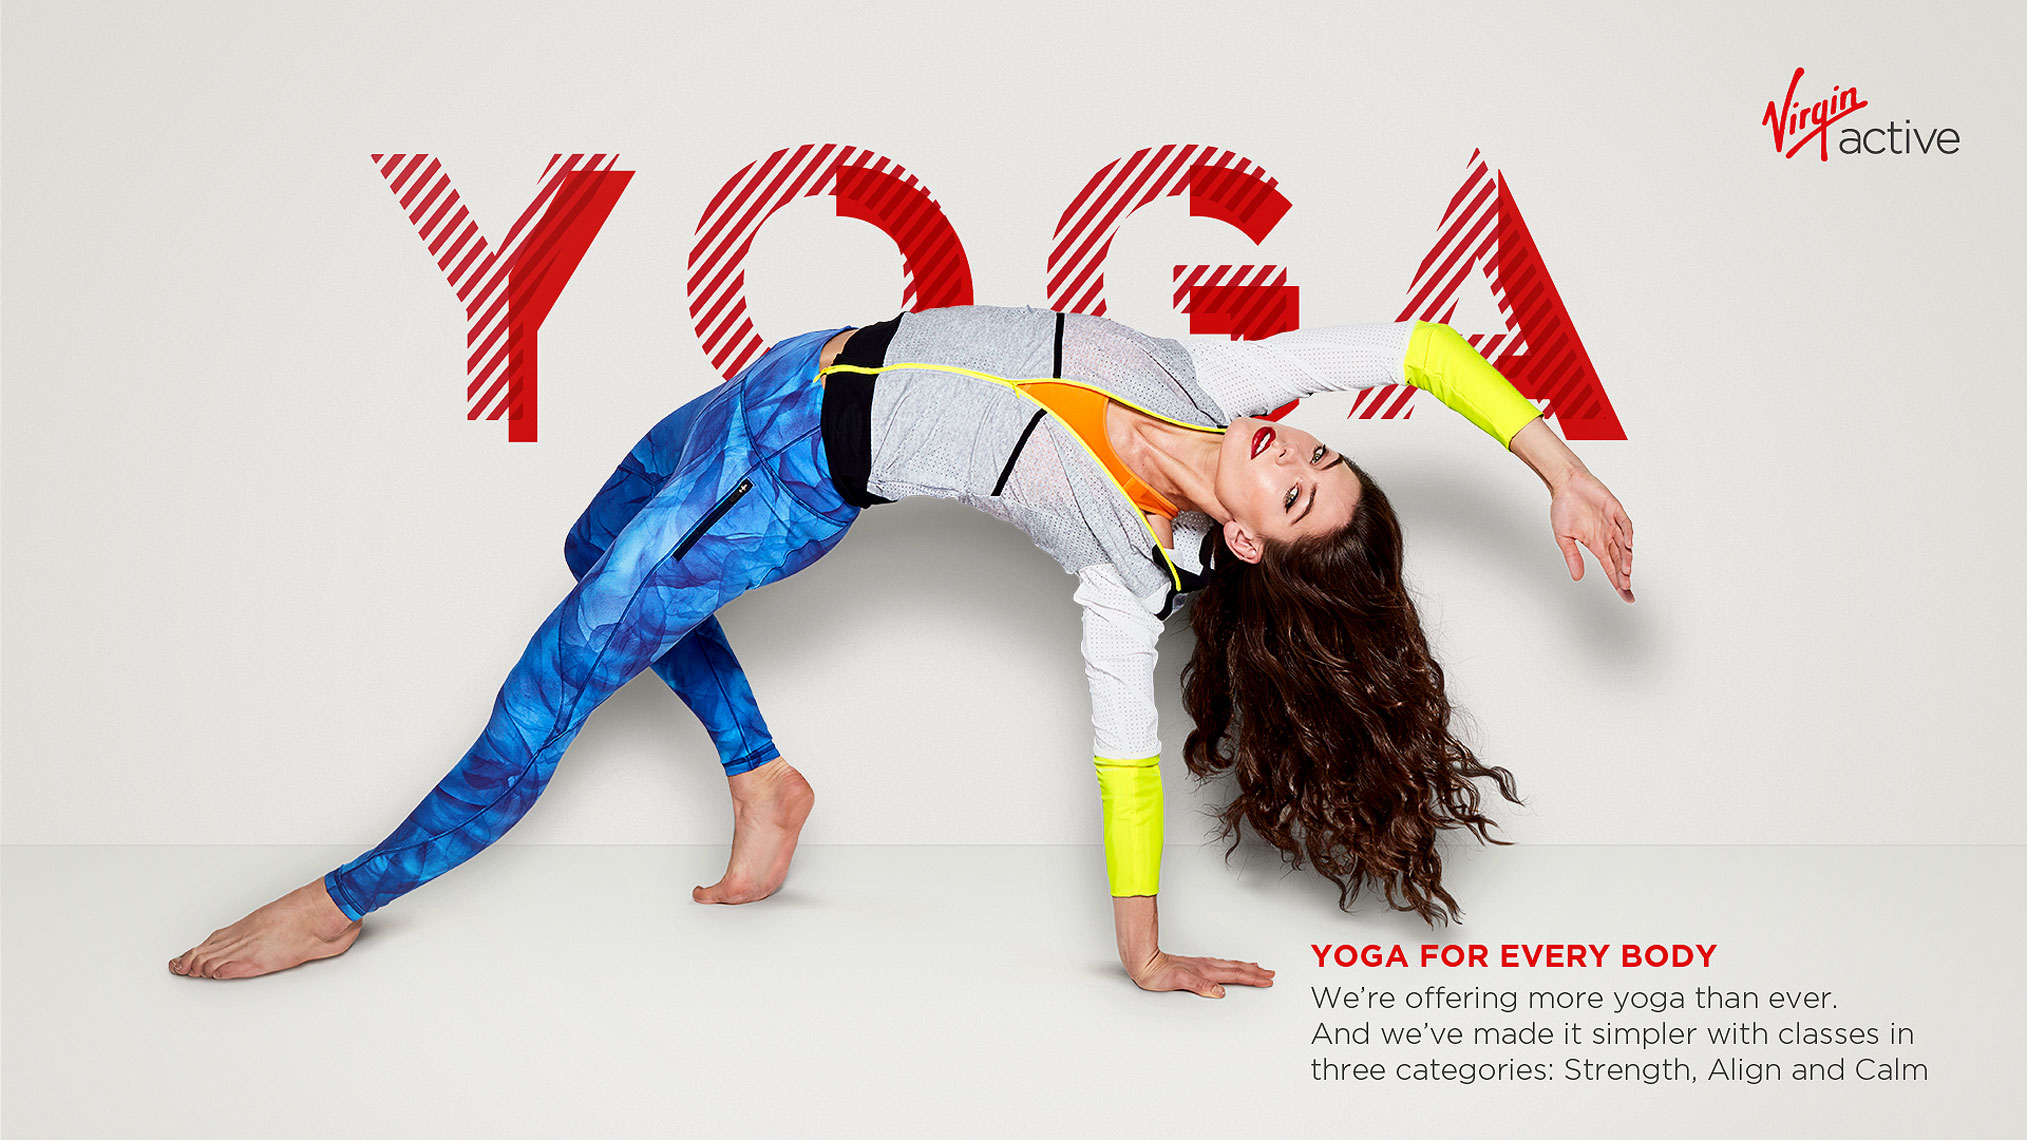 issie-gibbons-fashion-stylist-advertising-campaign-virgin-active-yoga-wellness